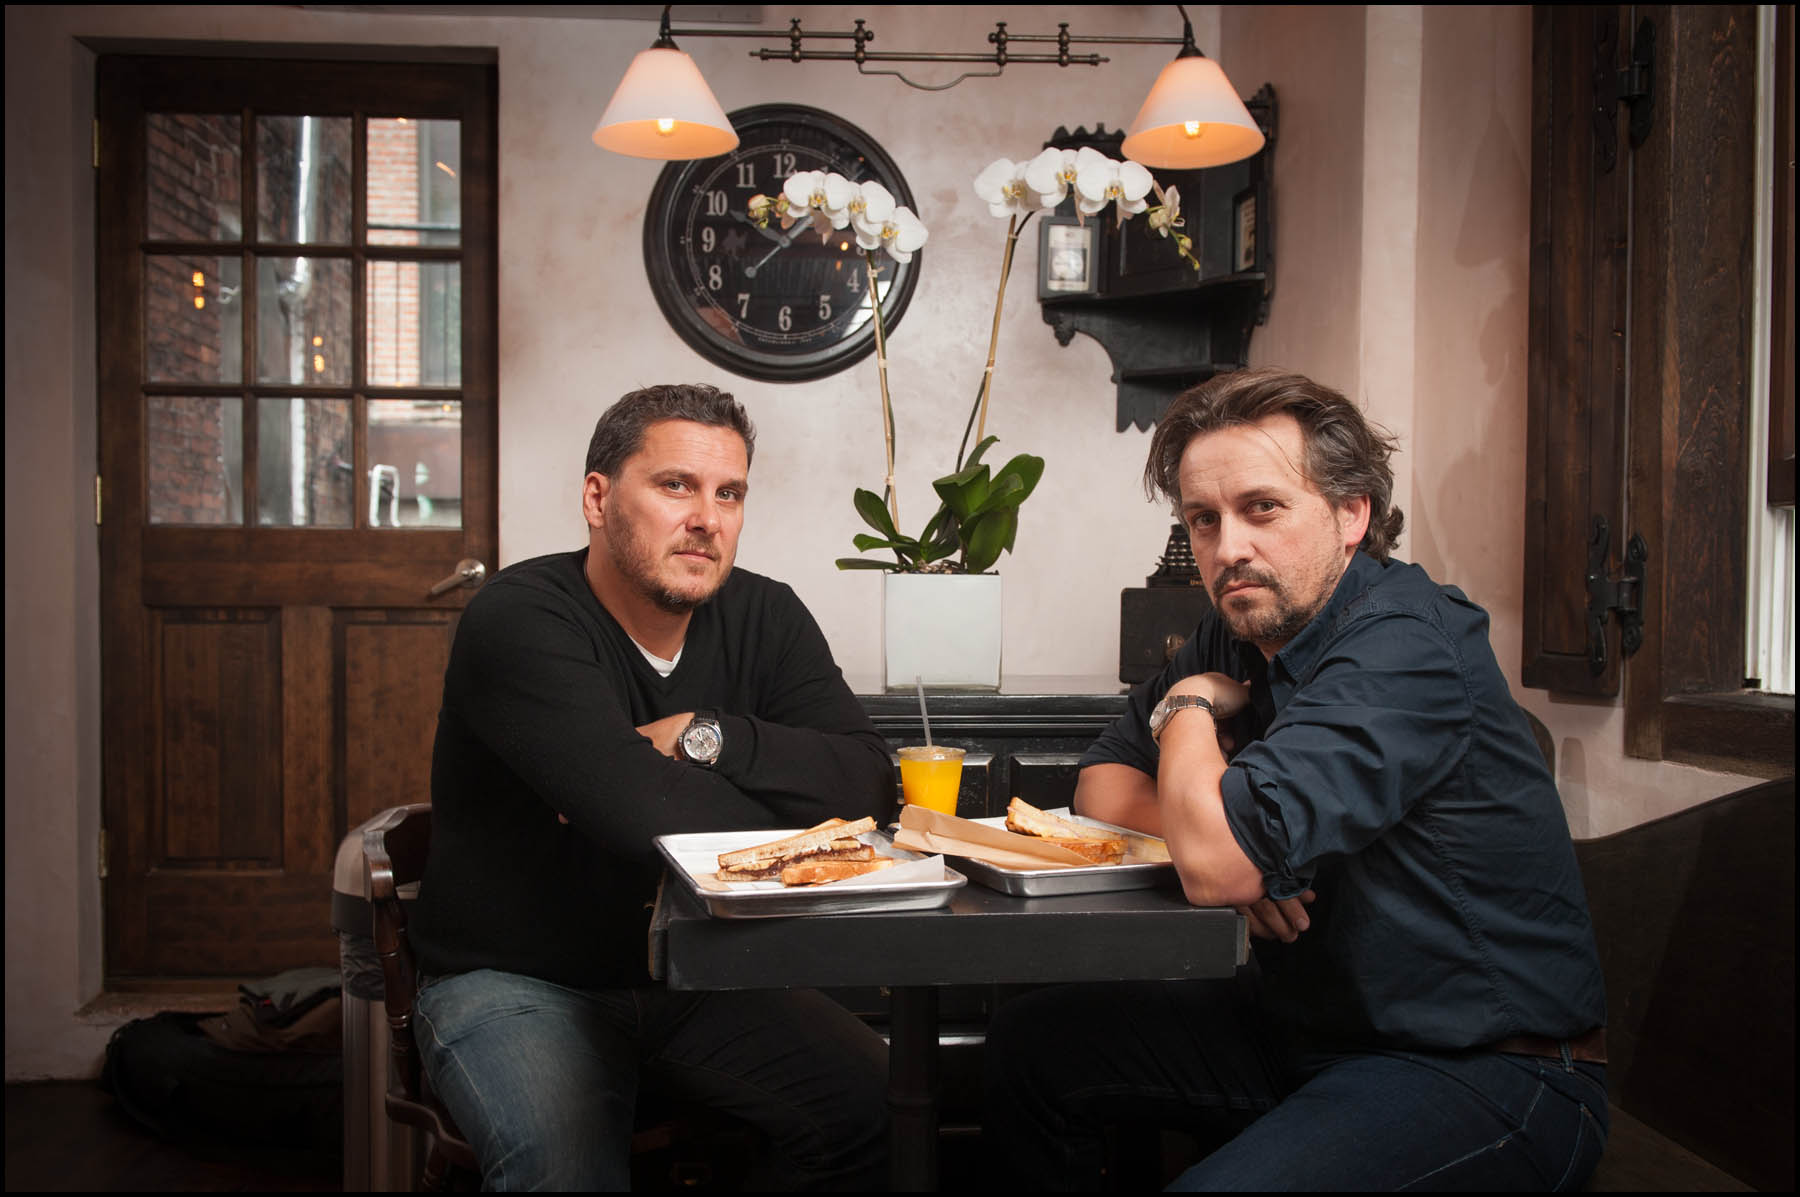 Yves Jadot (left) and Alberto Benenati in their new East Village Restaurant, La Maison du Croque Monsieur